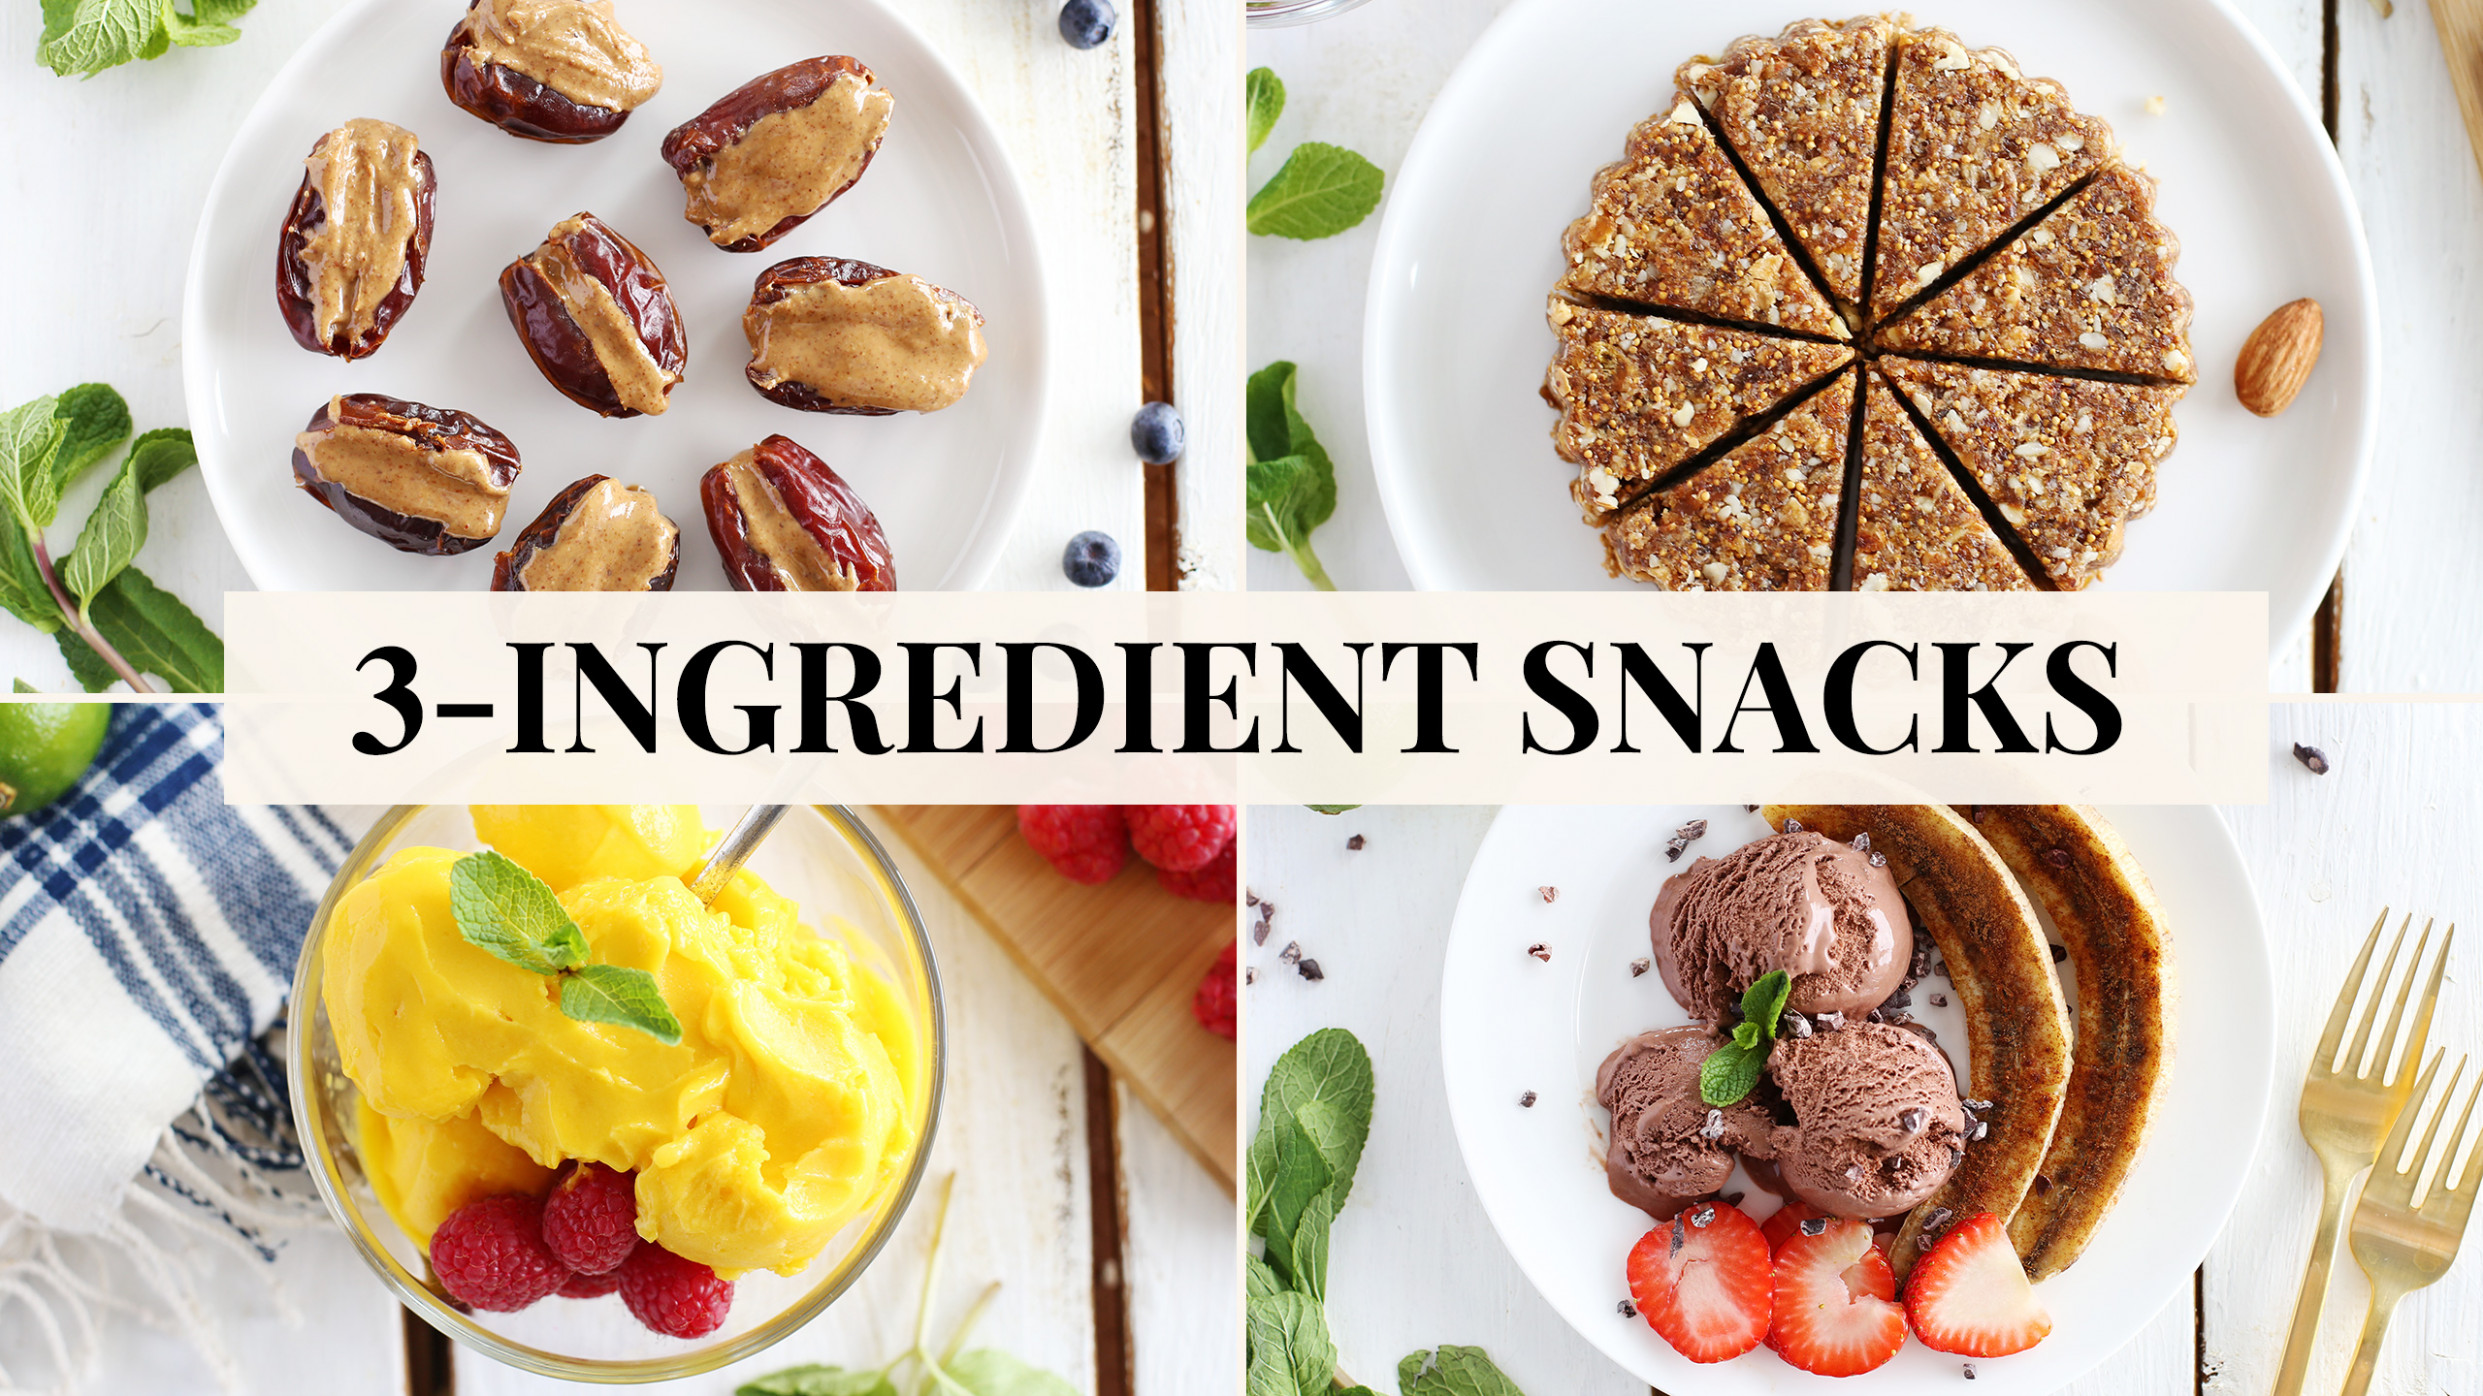 15 Healthy 15 Ingredient Snacks - Recipes For Healthy Snacks